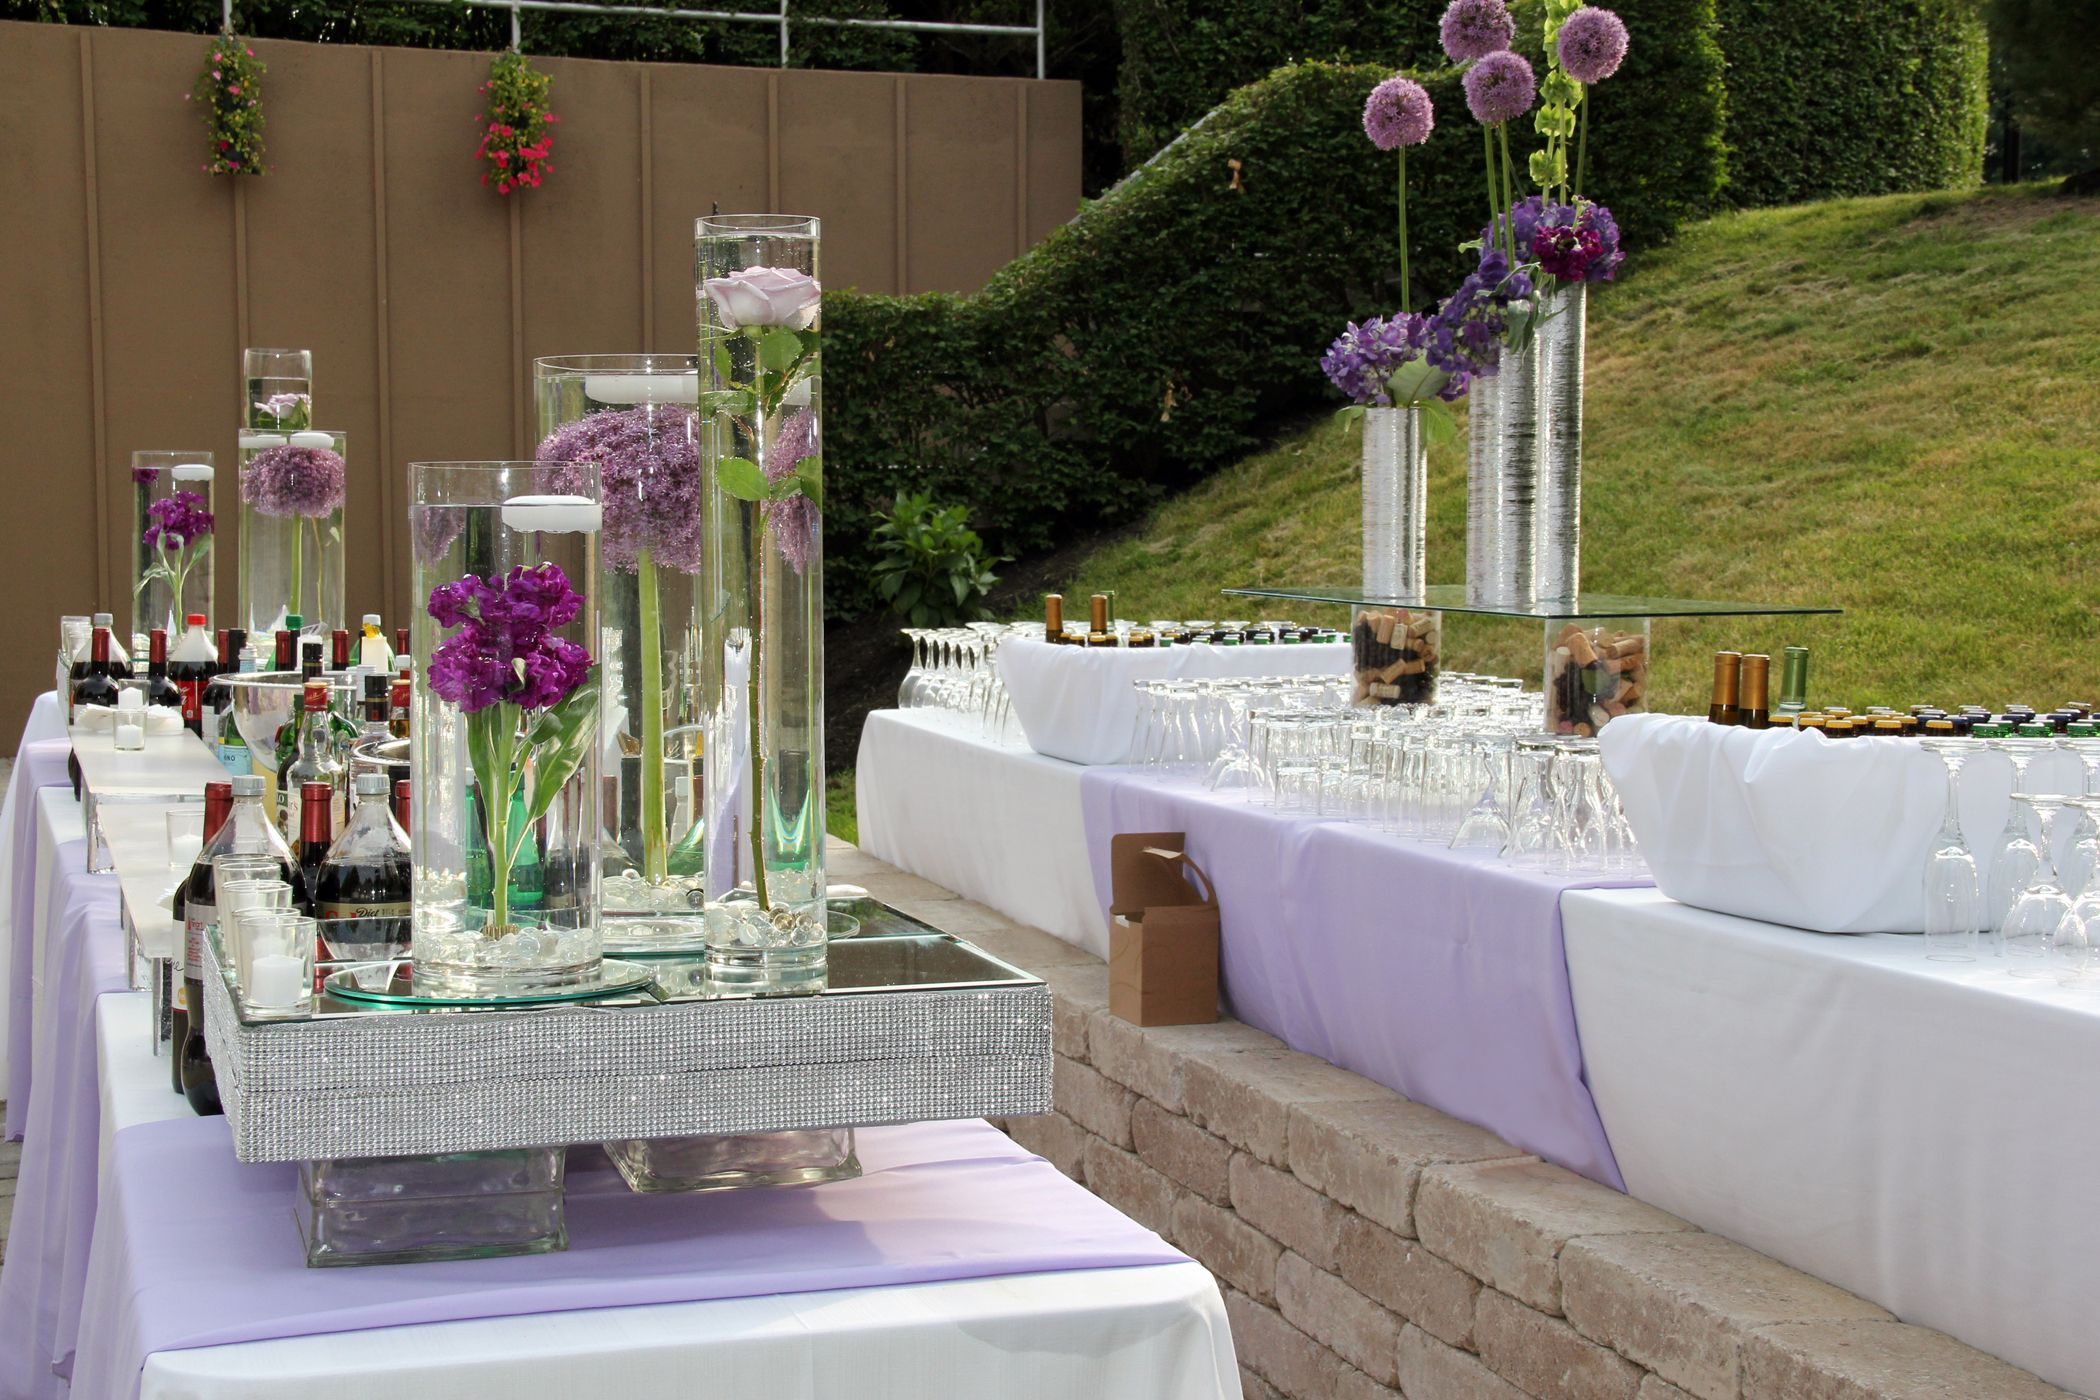 Summer Bar Set Up For An Outdoor Garden Wedding Reception Which Includes Style And Design